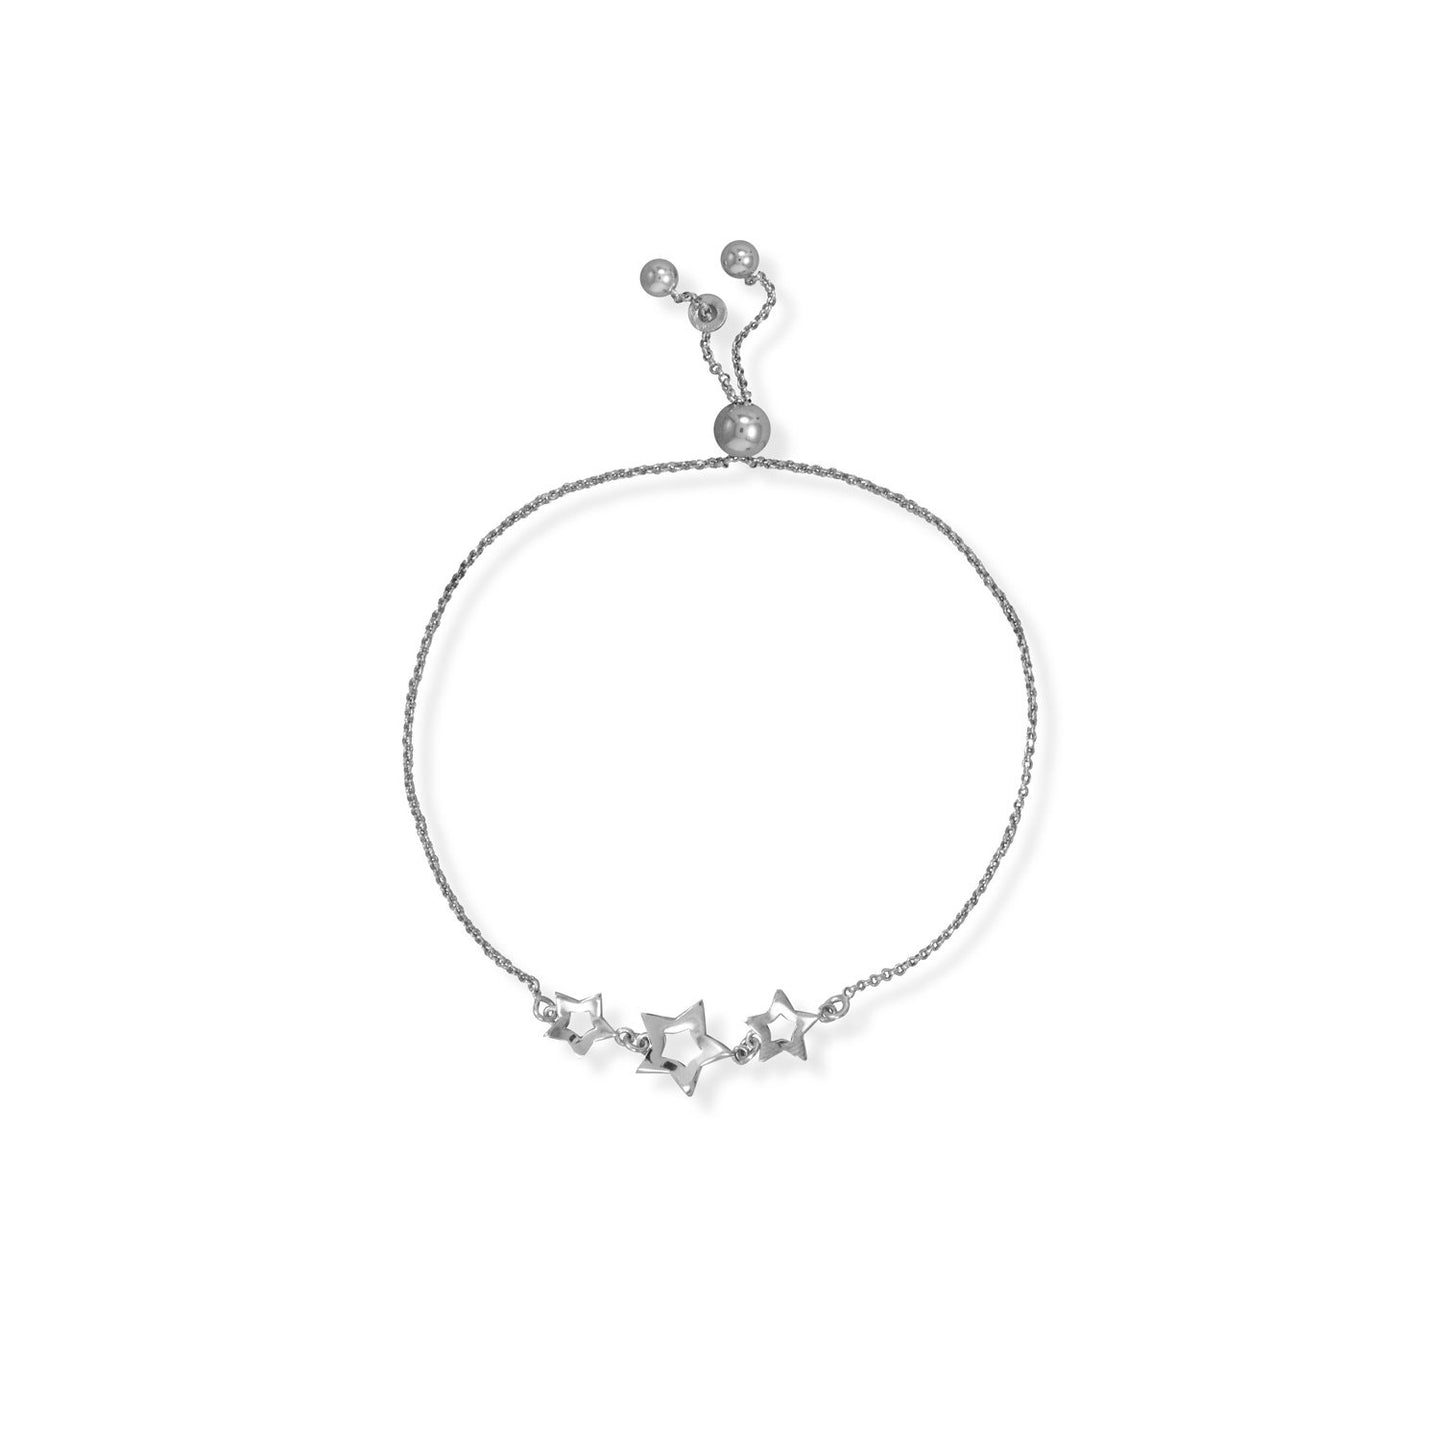 Adjustable Rhodium Plated 3 Star Bolo Bracelet